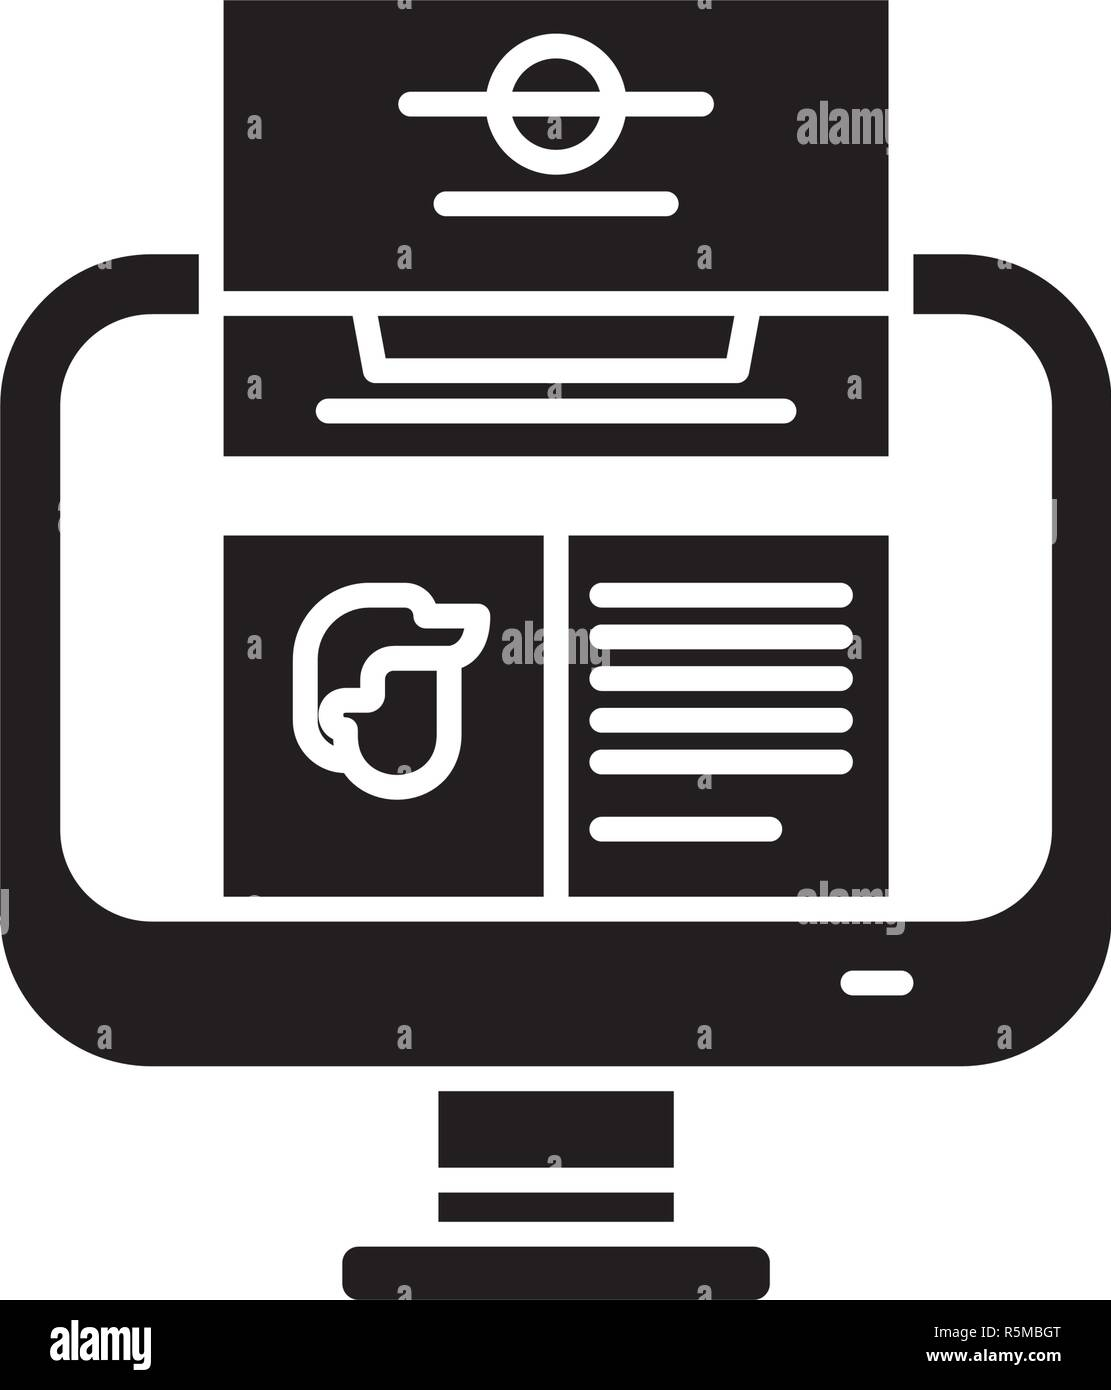 Unit analysis black icon, vector sign on isolated background. Unit analysis concept symbol, illustration  - Stock Vector